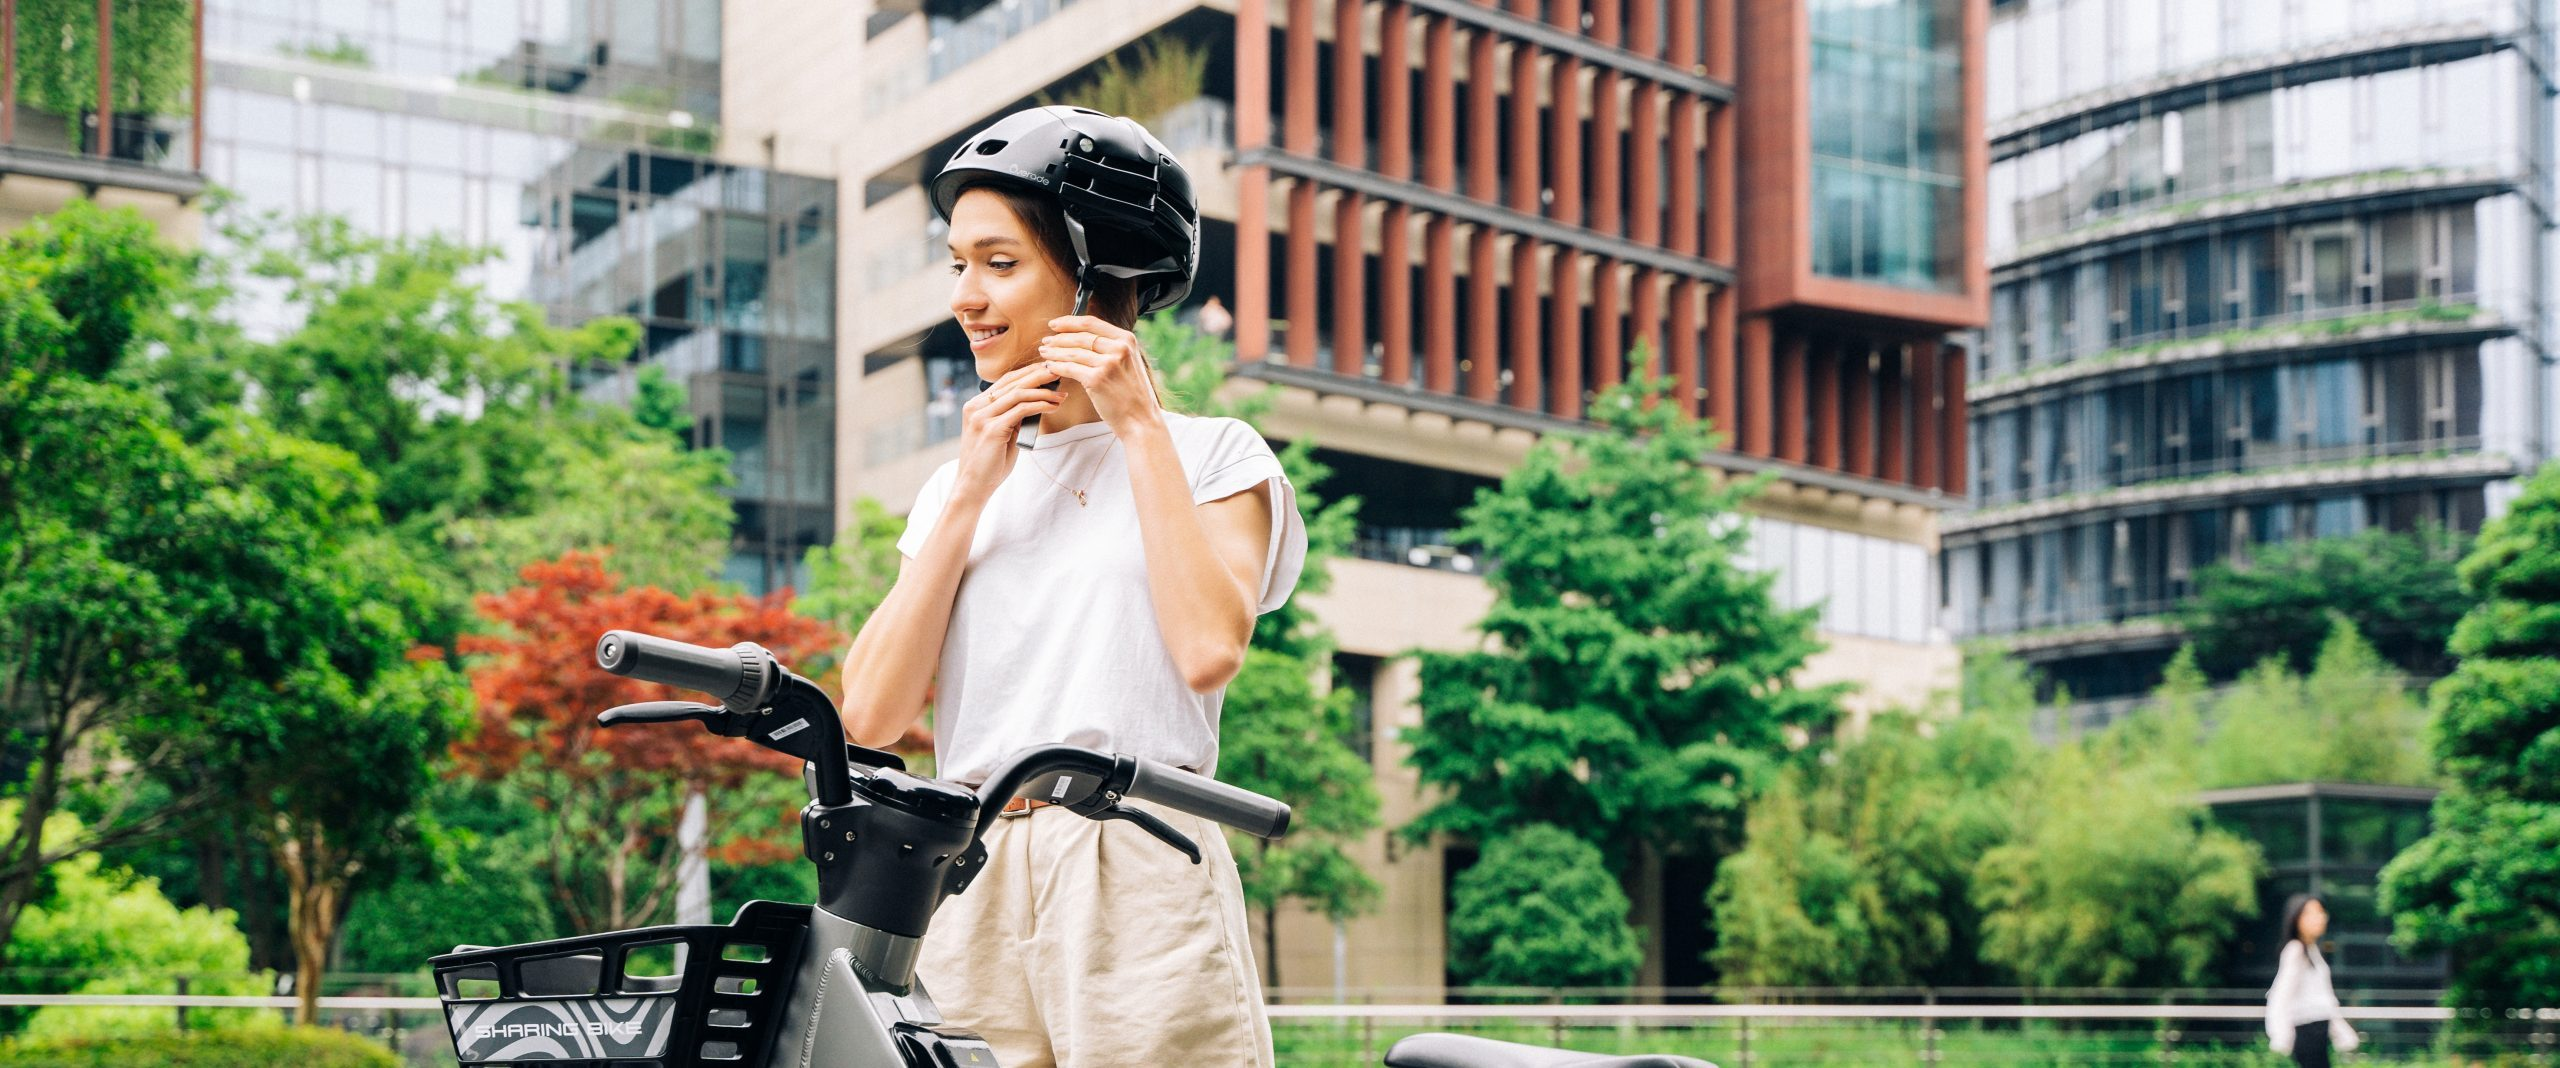 Micromobility101: What Insurance Do You Need for Micromobility Business?